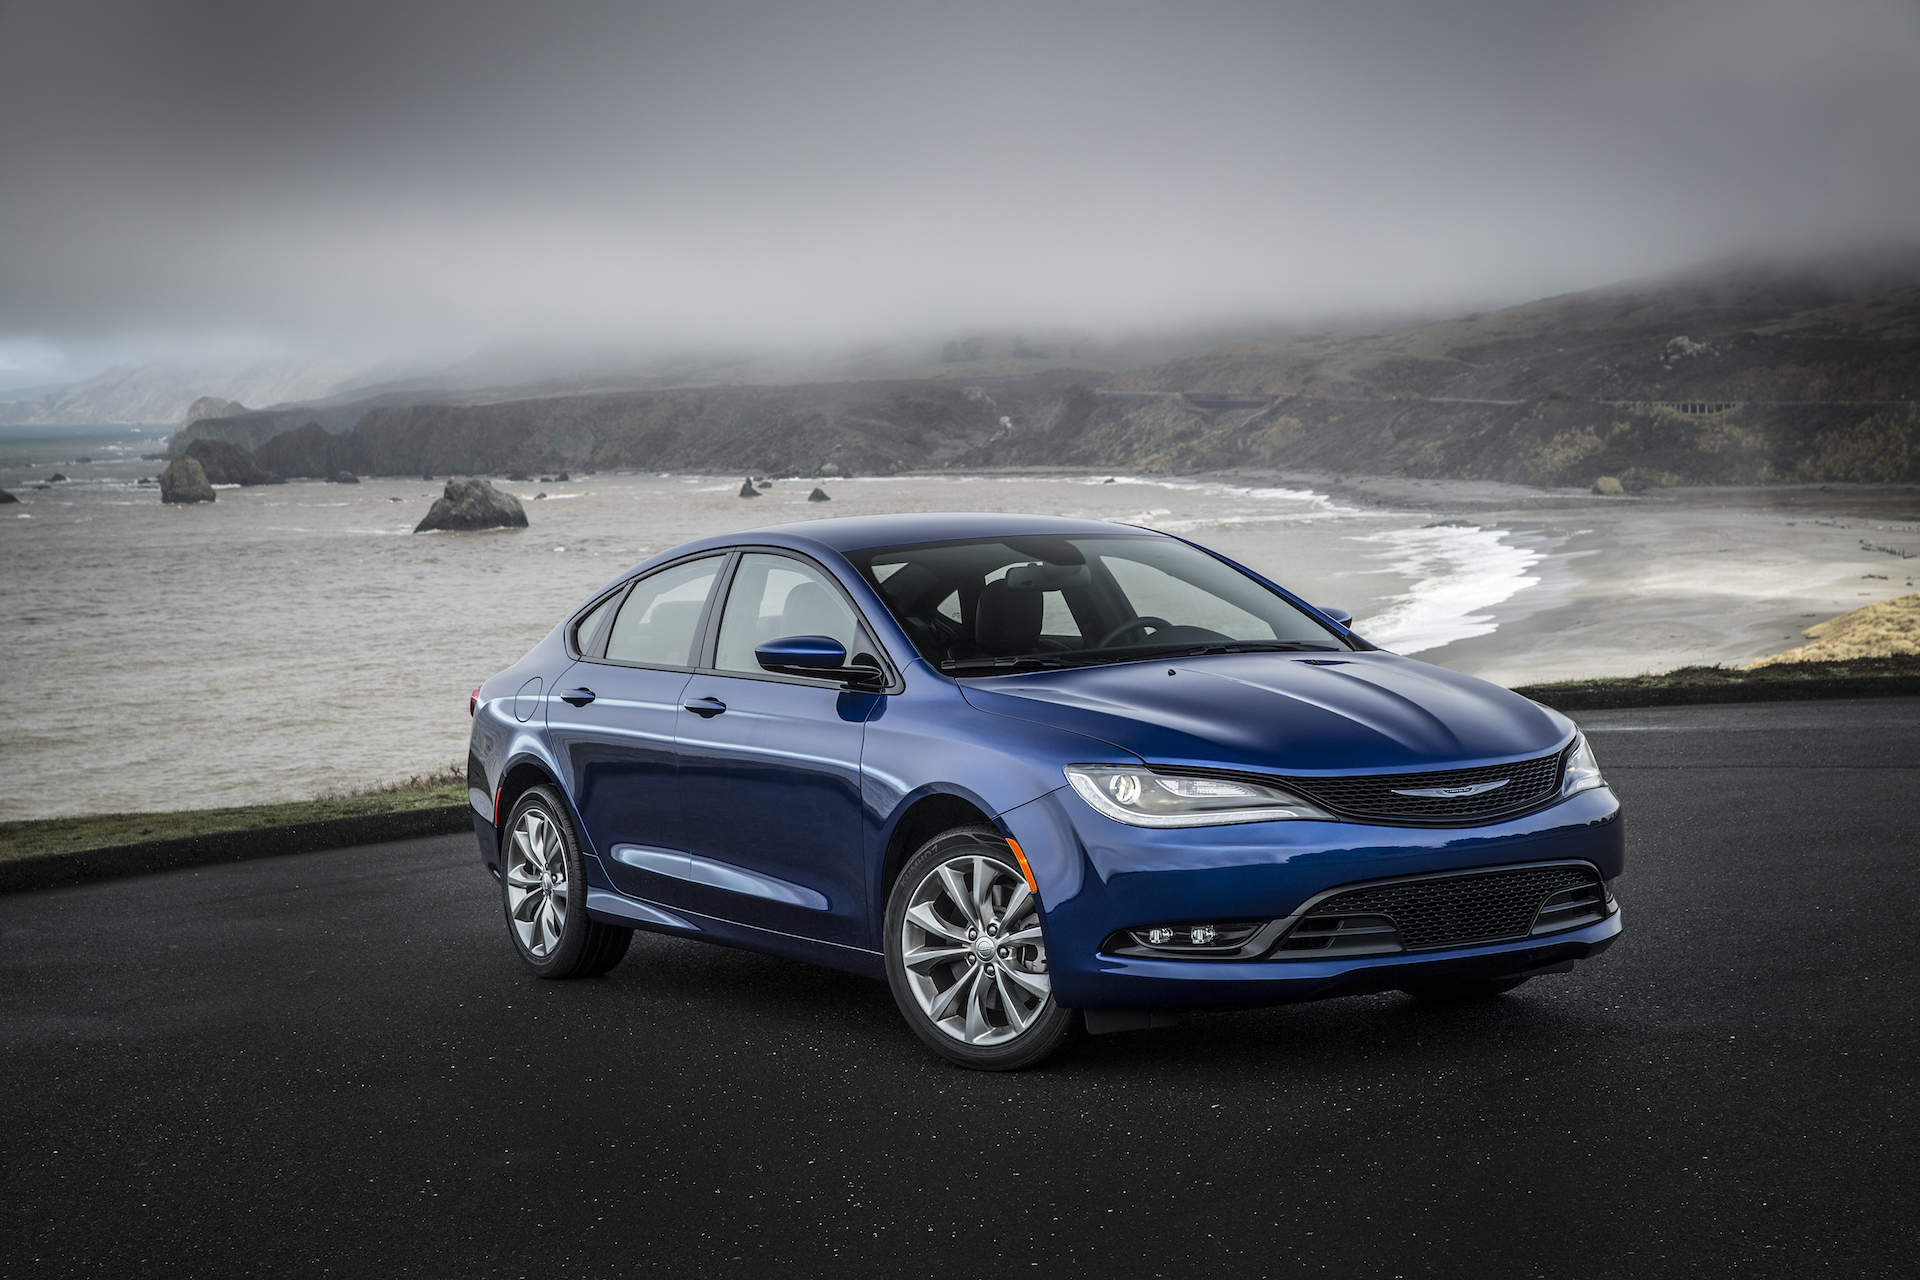 2017 chrysler 200 review ratings specs prices and photos the car connection. Black Bedroom Furniture Sets. Home Design Ideas